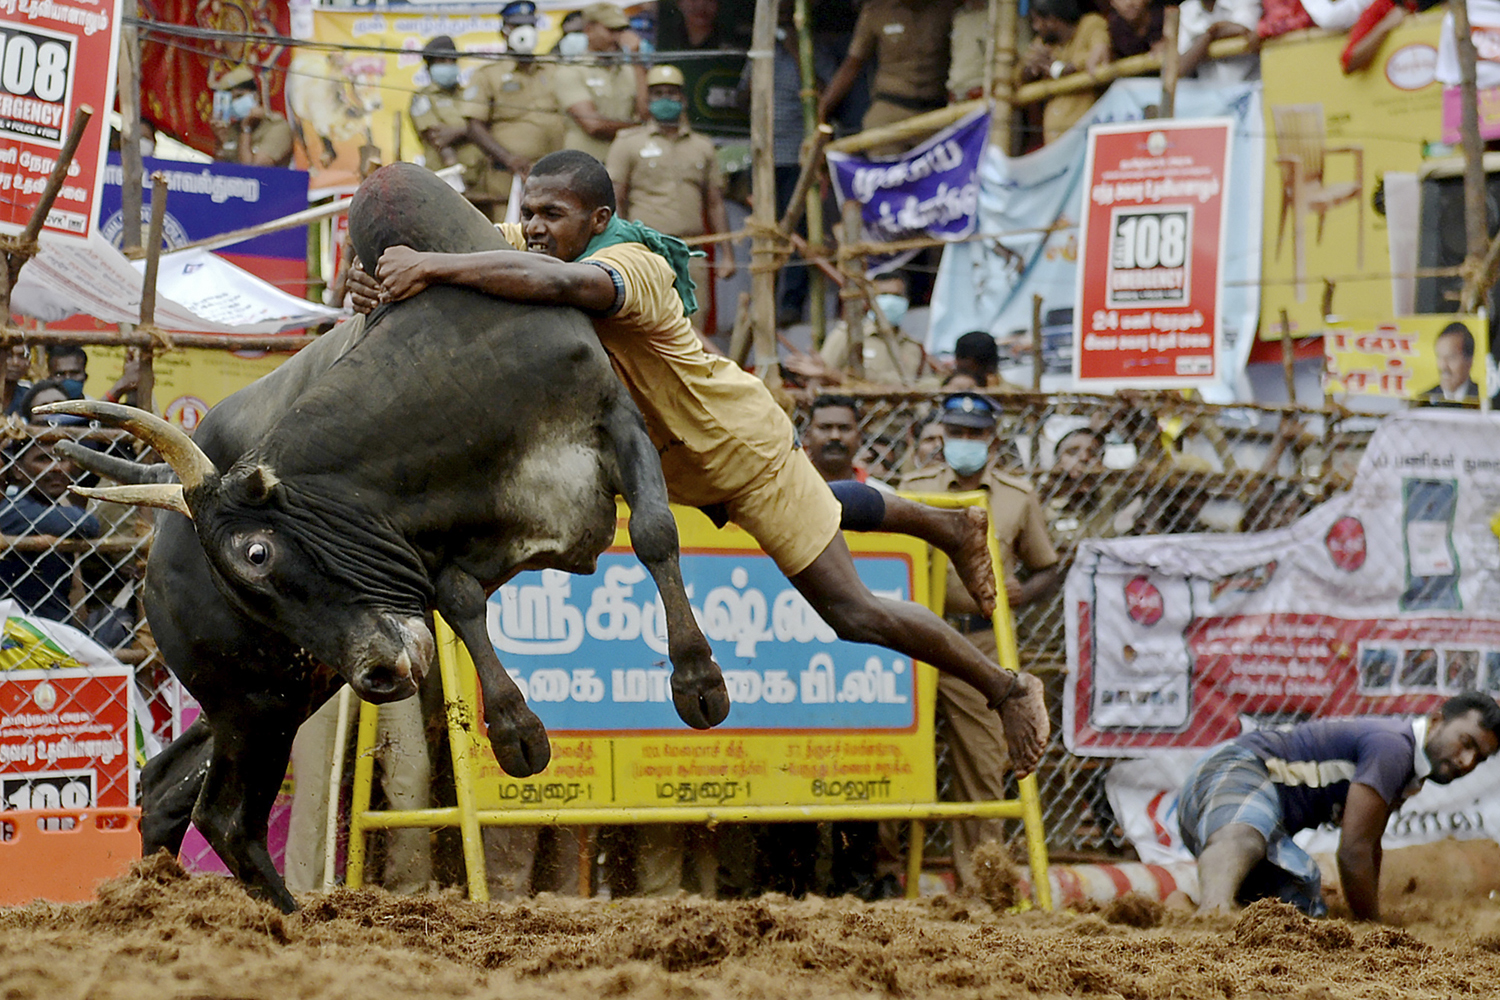 A participant tries to control a bull during an annual bull-taming festival in Palamedu, India, on the outskirts of Madurai, on Jan. 15. ARUN SANKAR/AFP via Getty Images